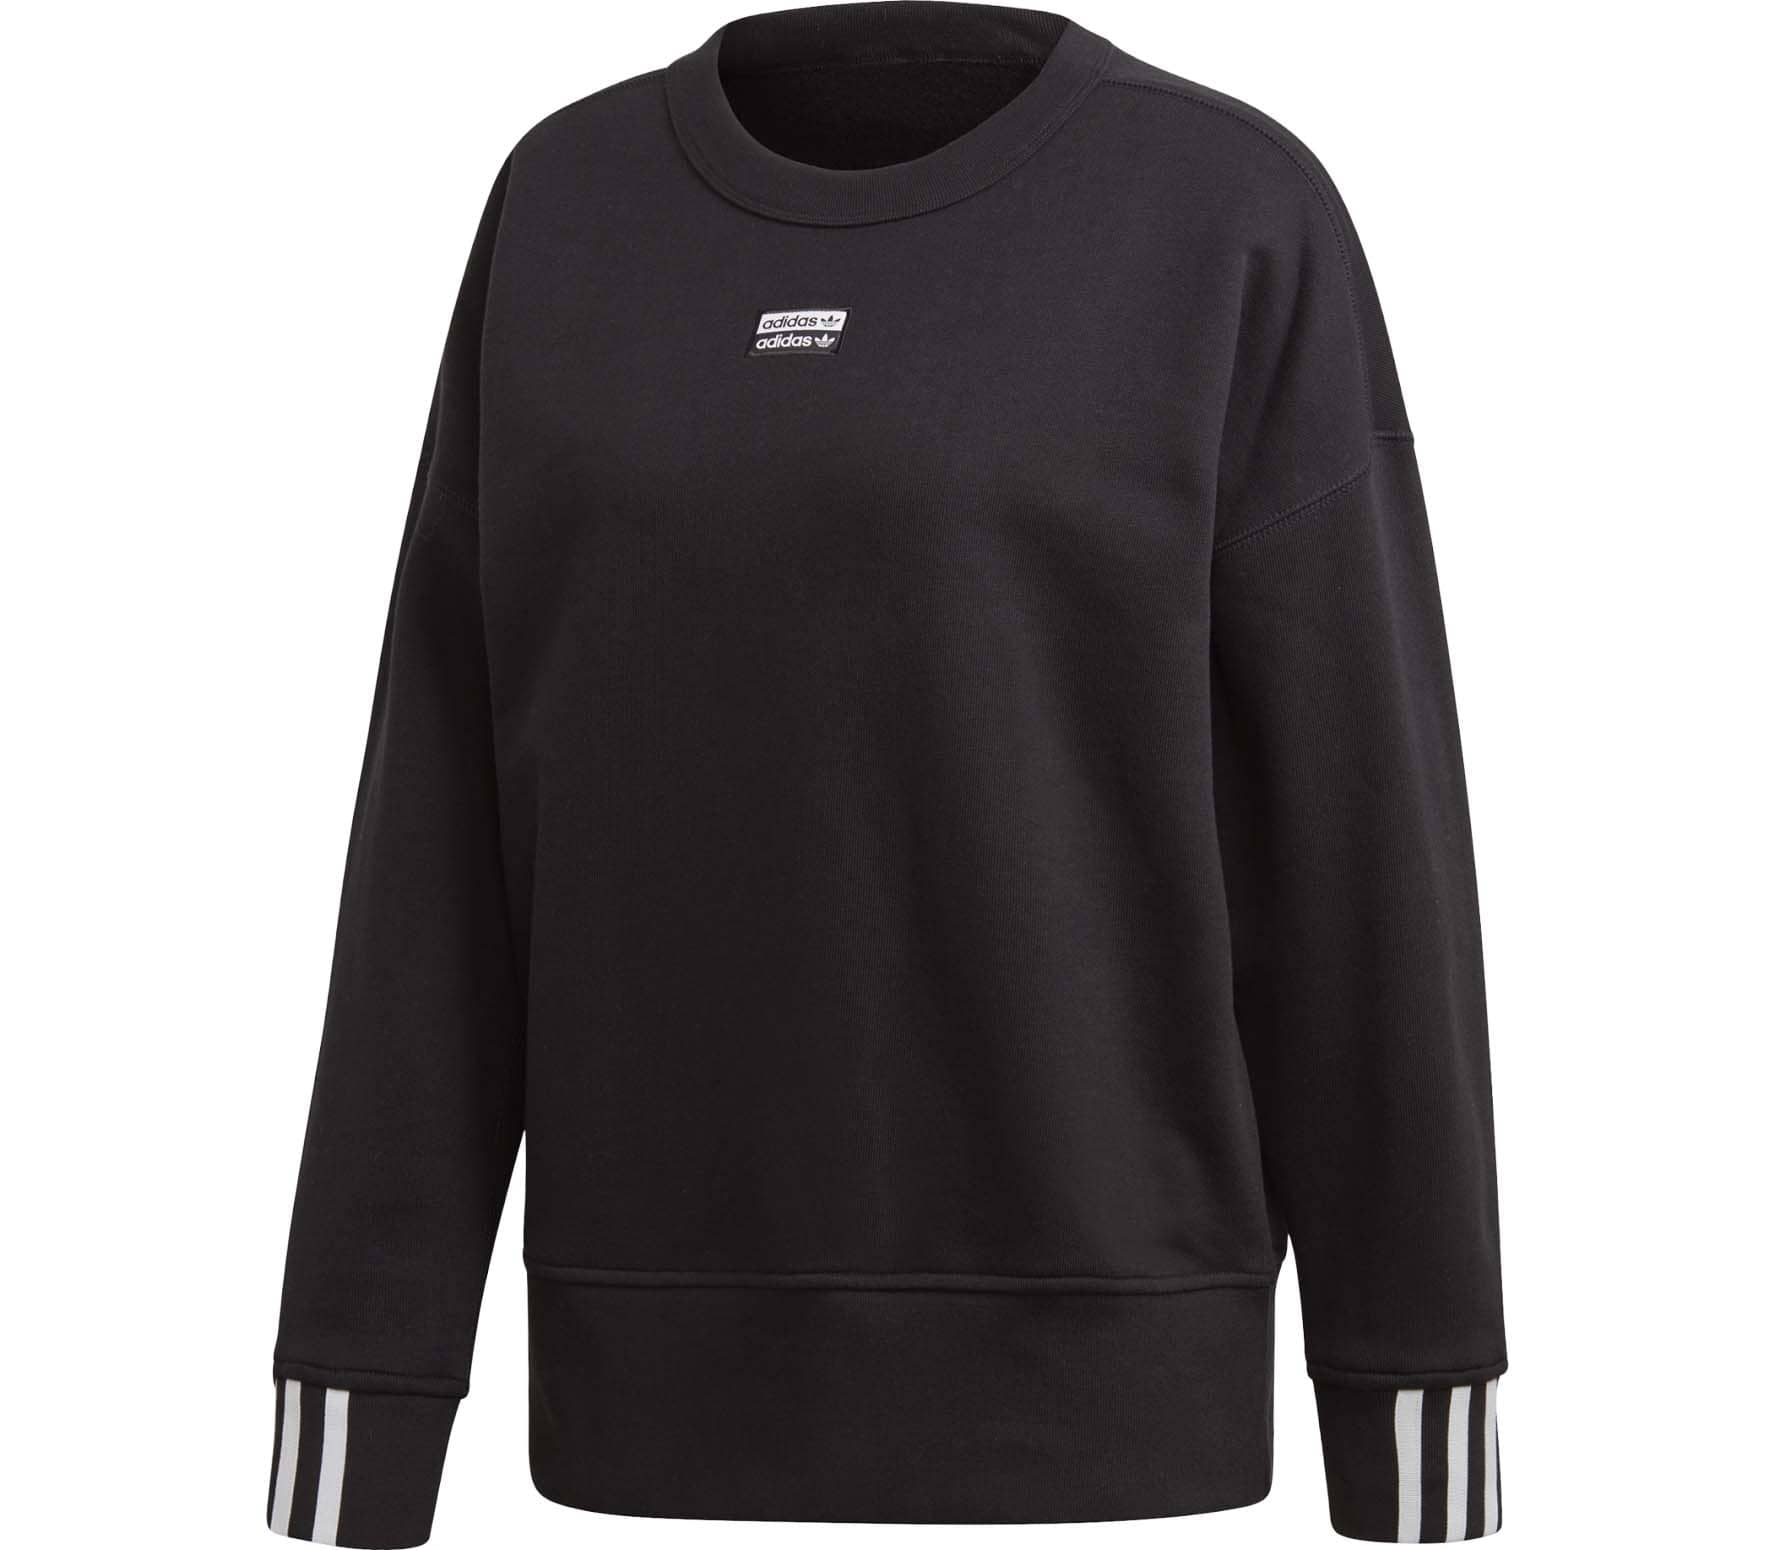 Adidas Sweatshirt Schwarz Herren Vocal Women Sweatshirt